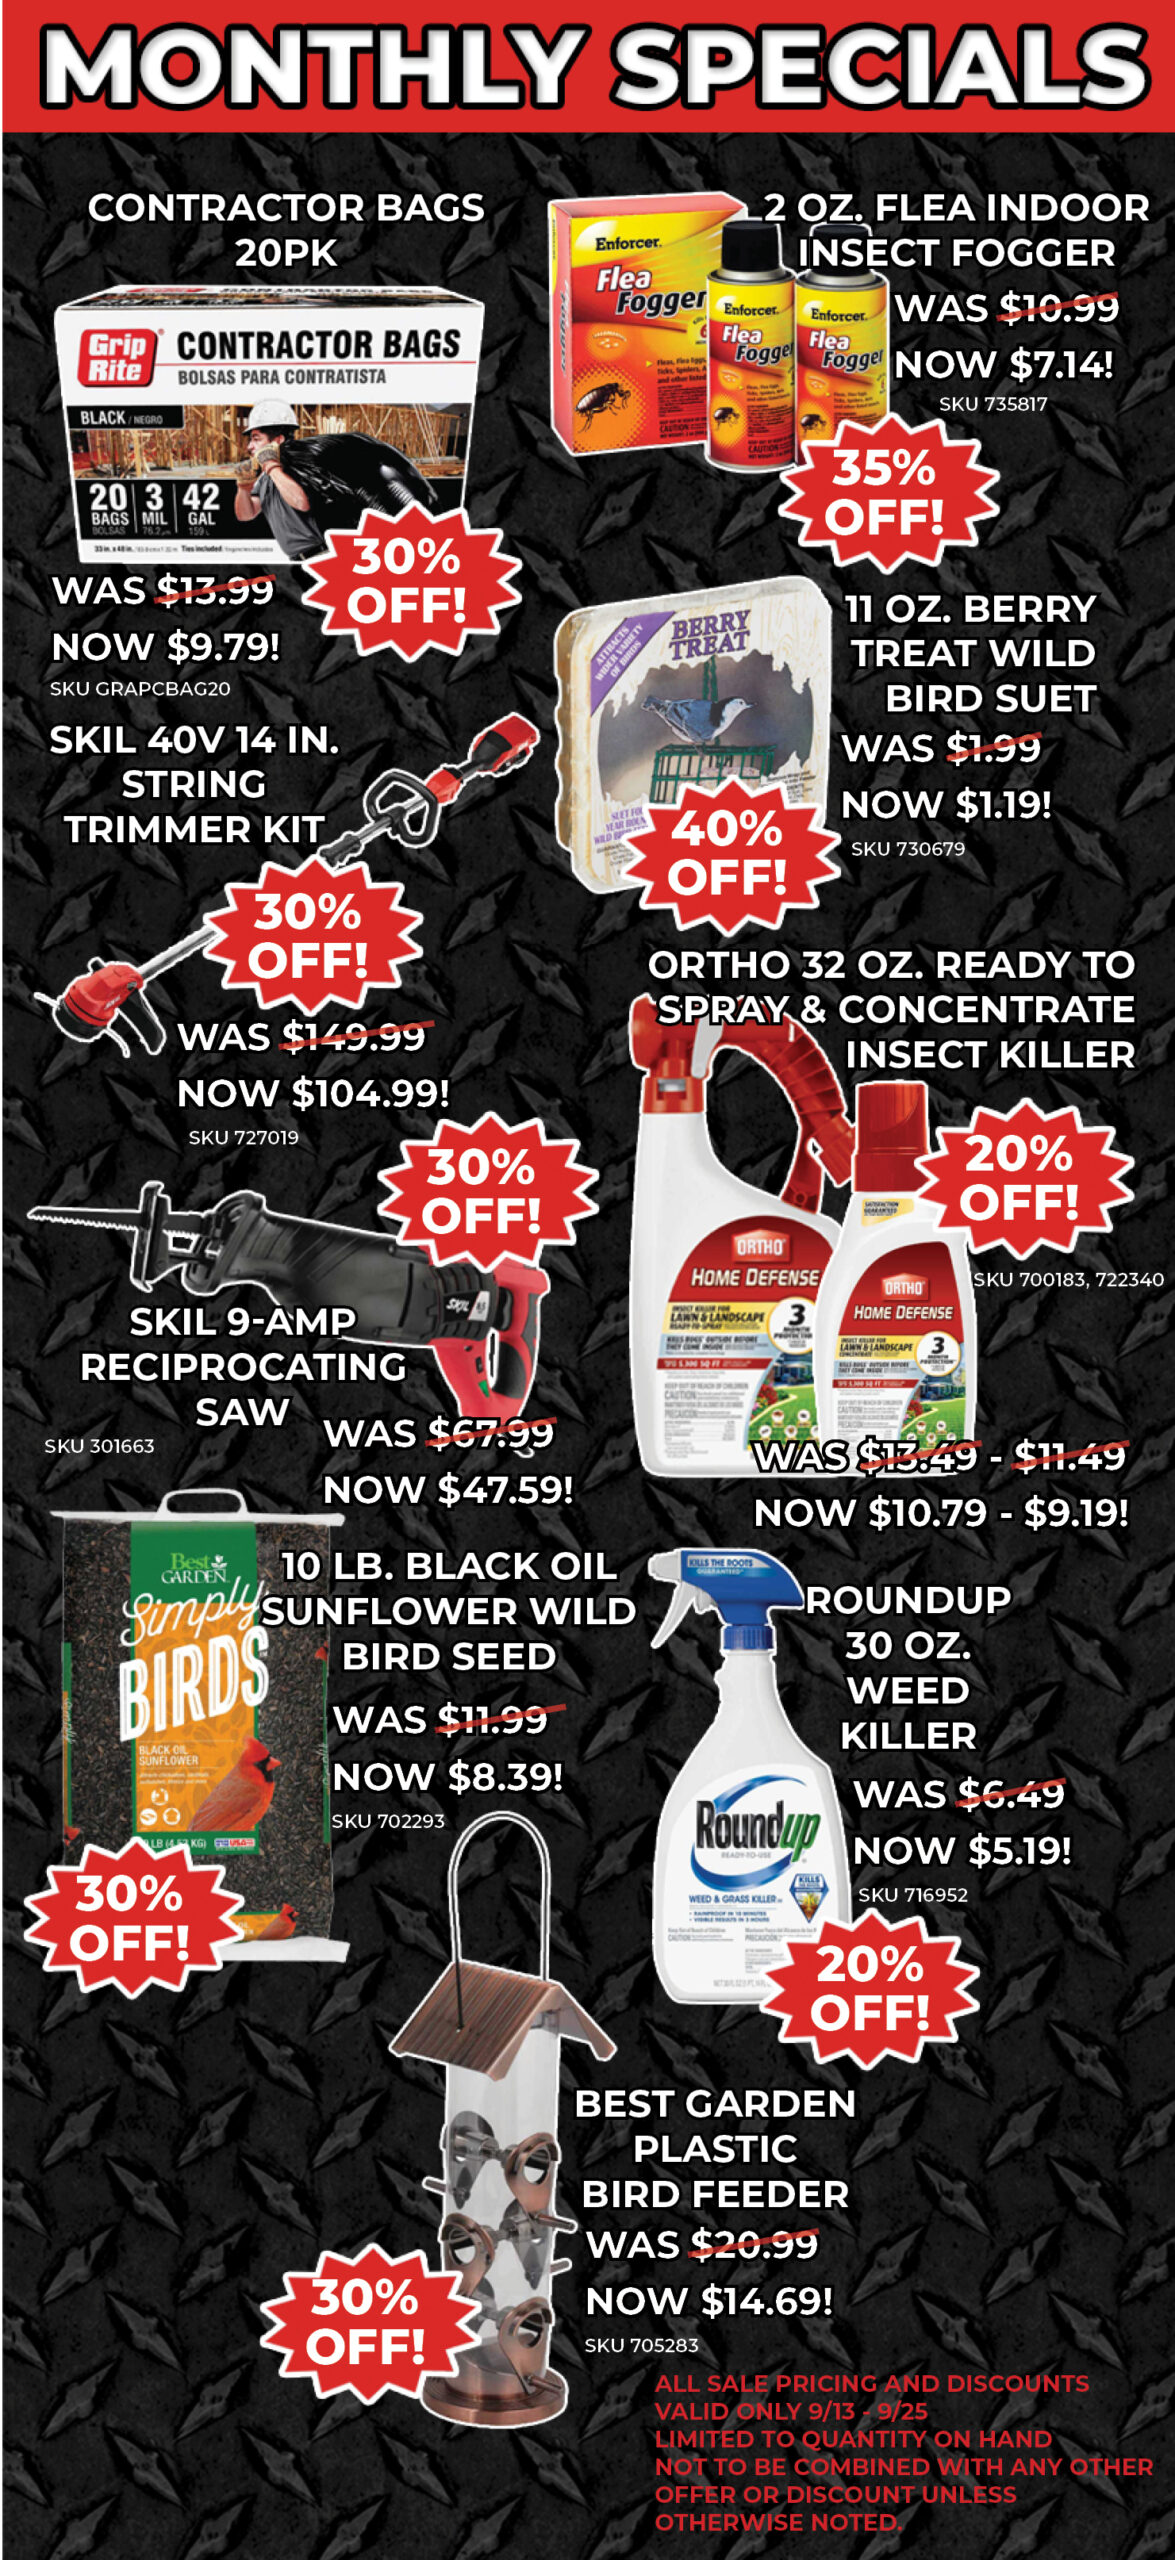 SEPT SPECIALS PRODUCT LISTS